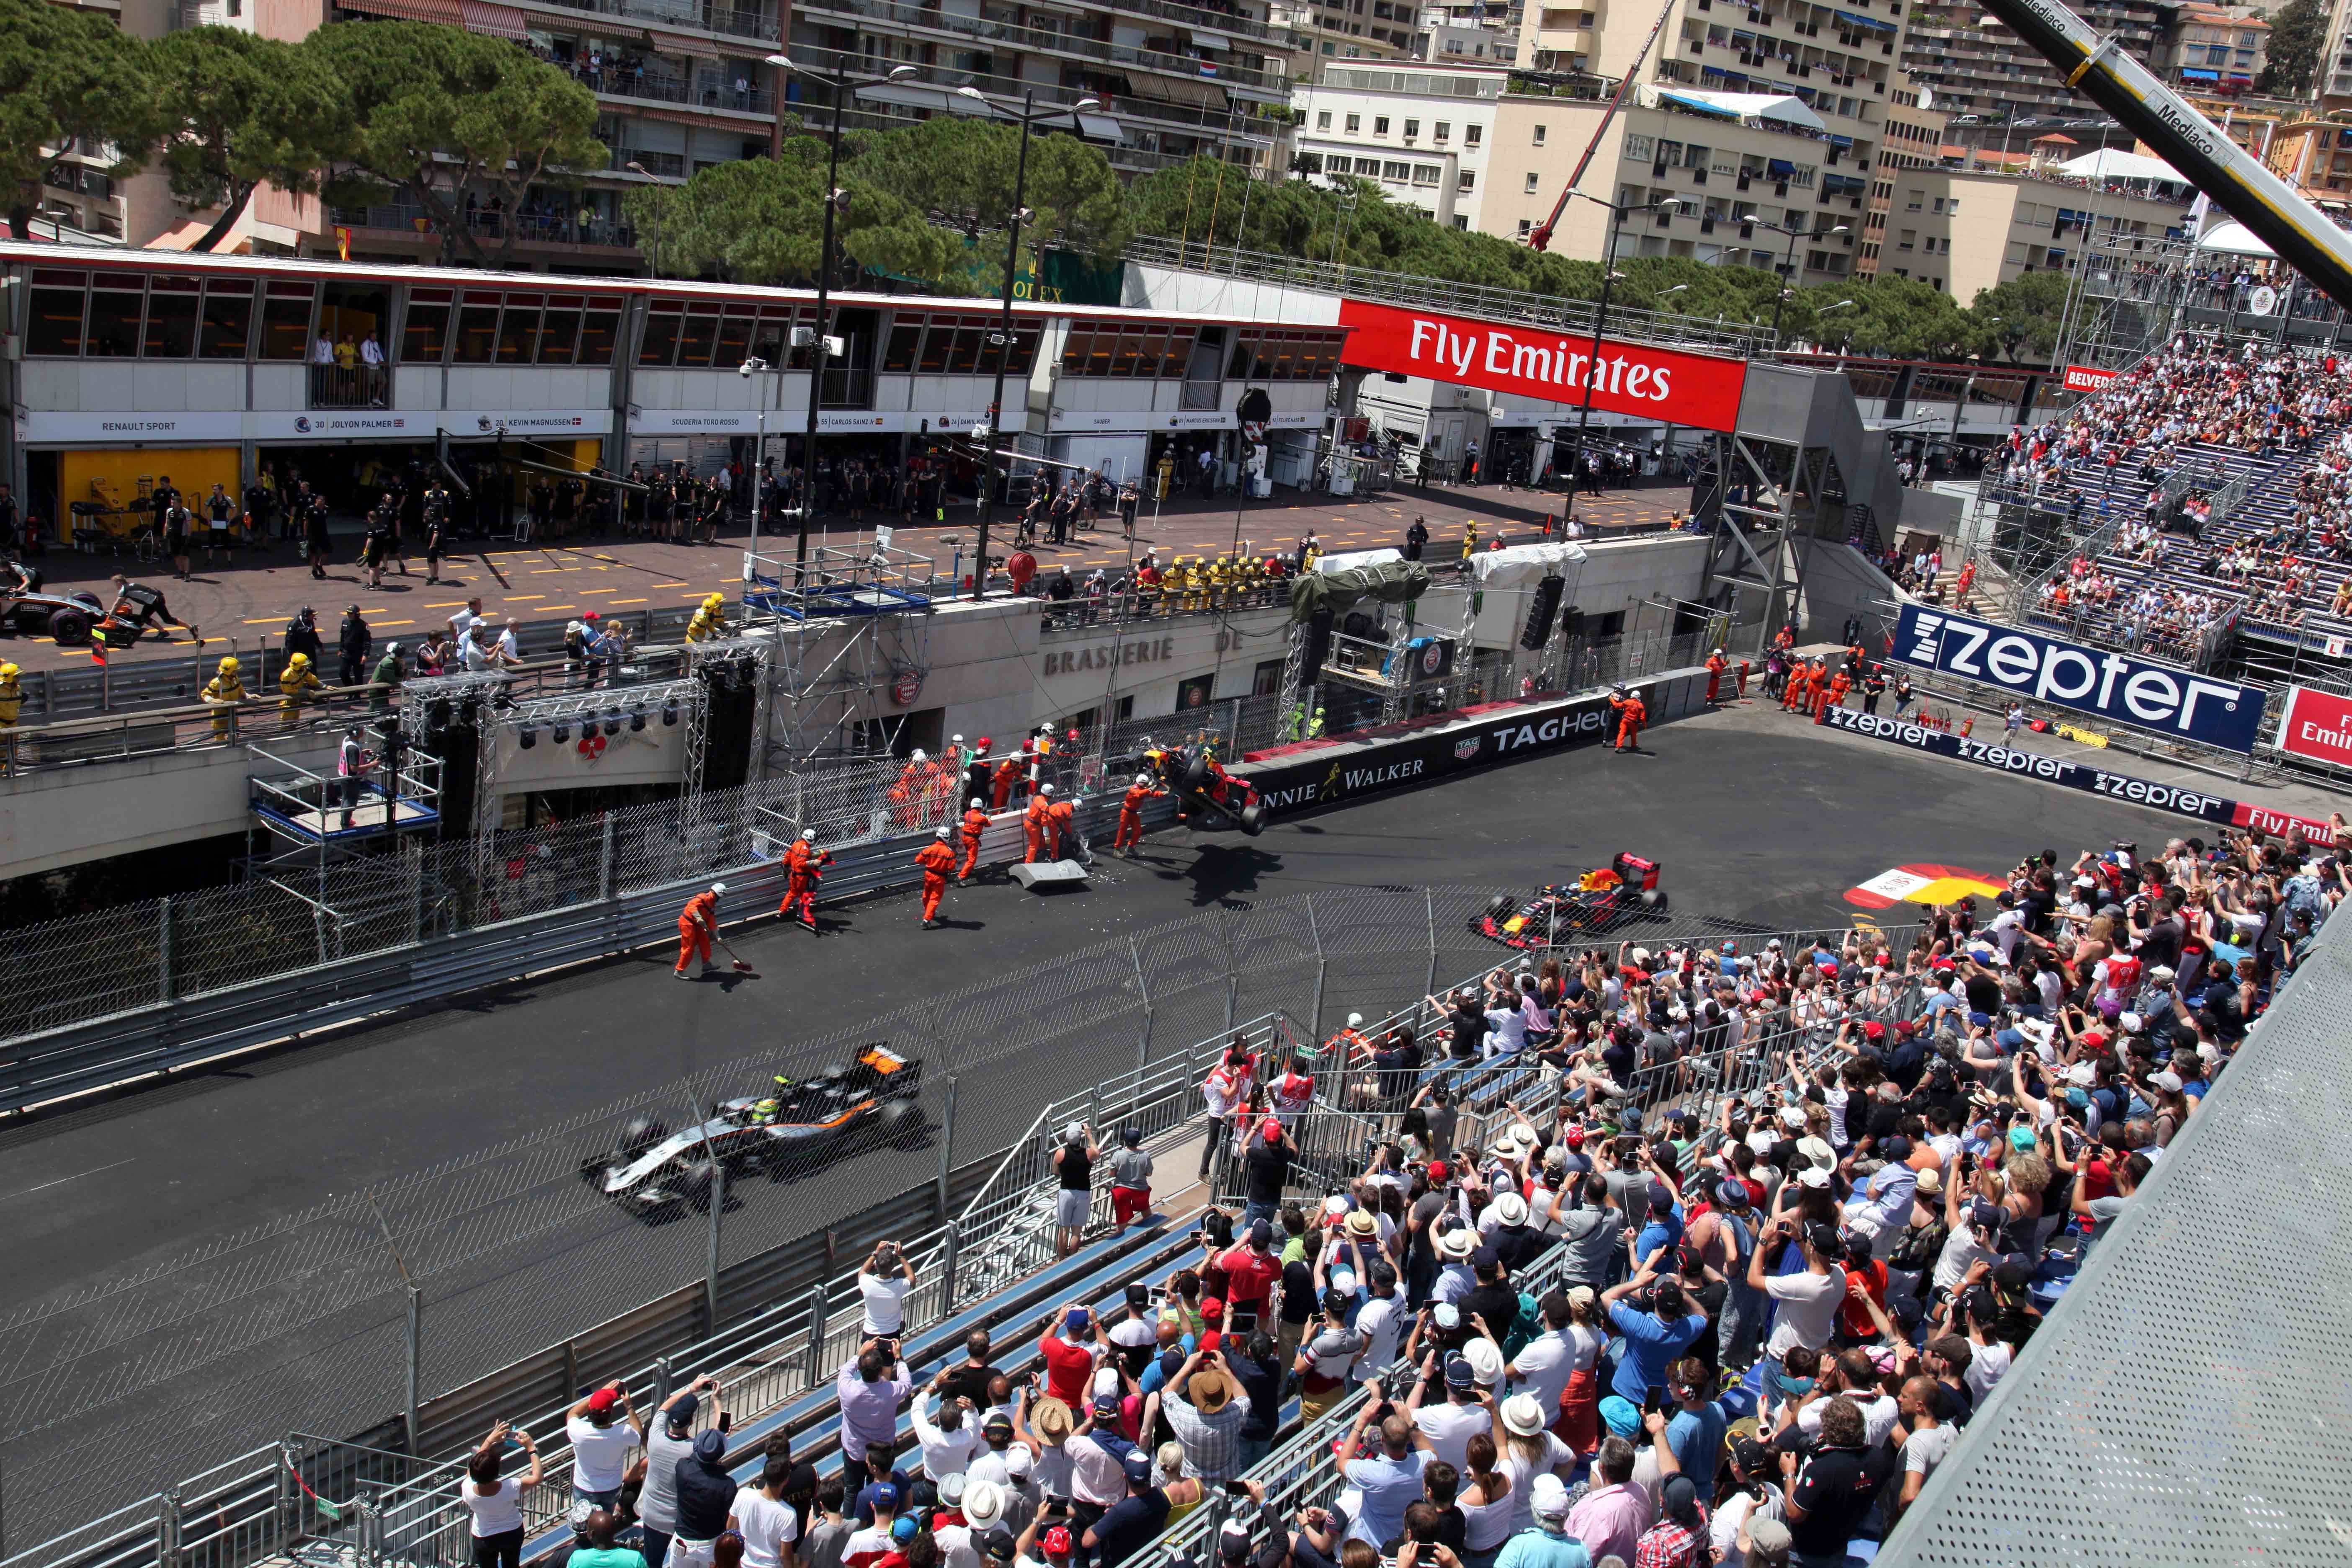 Photo Report: Behind The Scenes At The Monaco Grand Prix 2016 With TAG Heuer CEO Jean-Claude Biver Photo Report: Behind The Scenes At The Monaco Grand Prix 2016 With TAG Heuer CEO Jean-Claude Biver IMG 0646